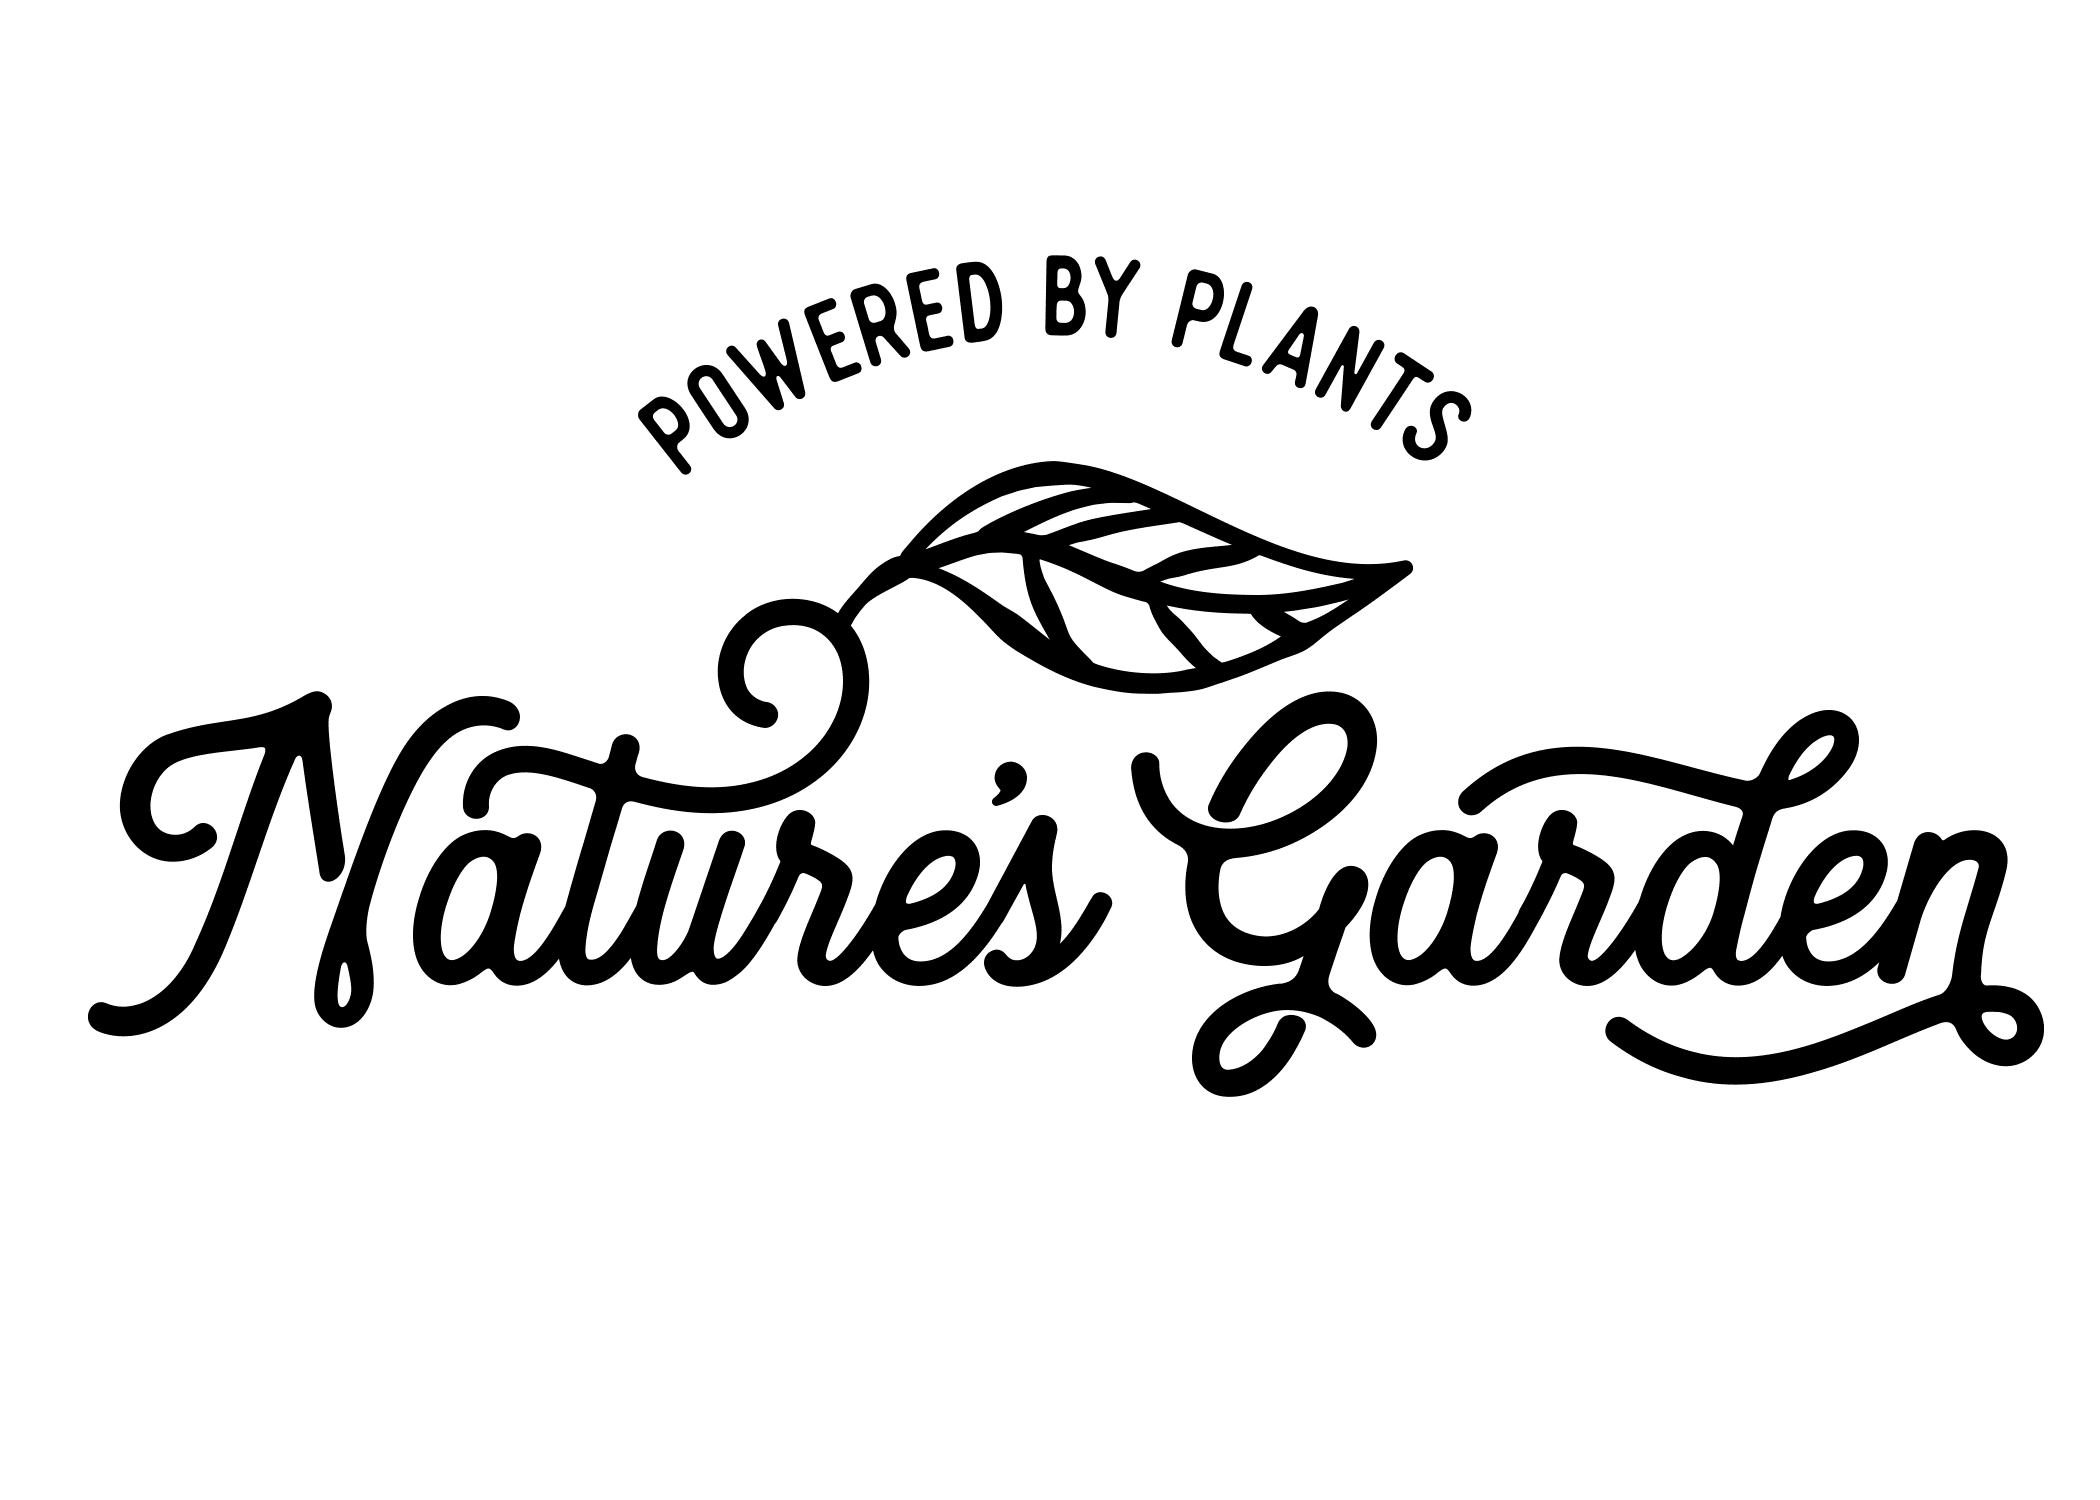 """Nature's Garden Kicks Off Second Decade of Business with Updated Product Packaging and New Slogan """"Powered by Plants"""""""